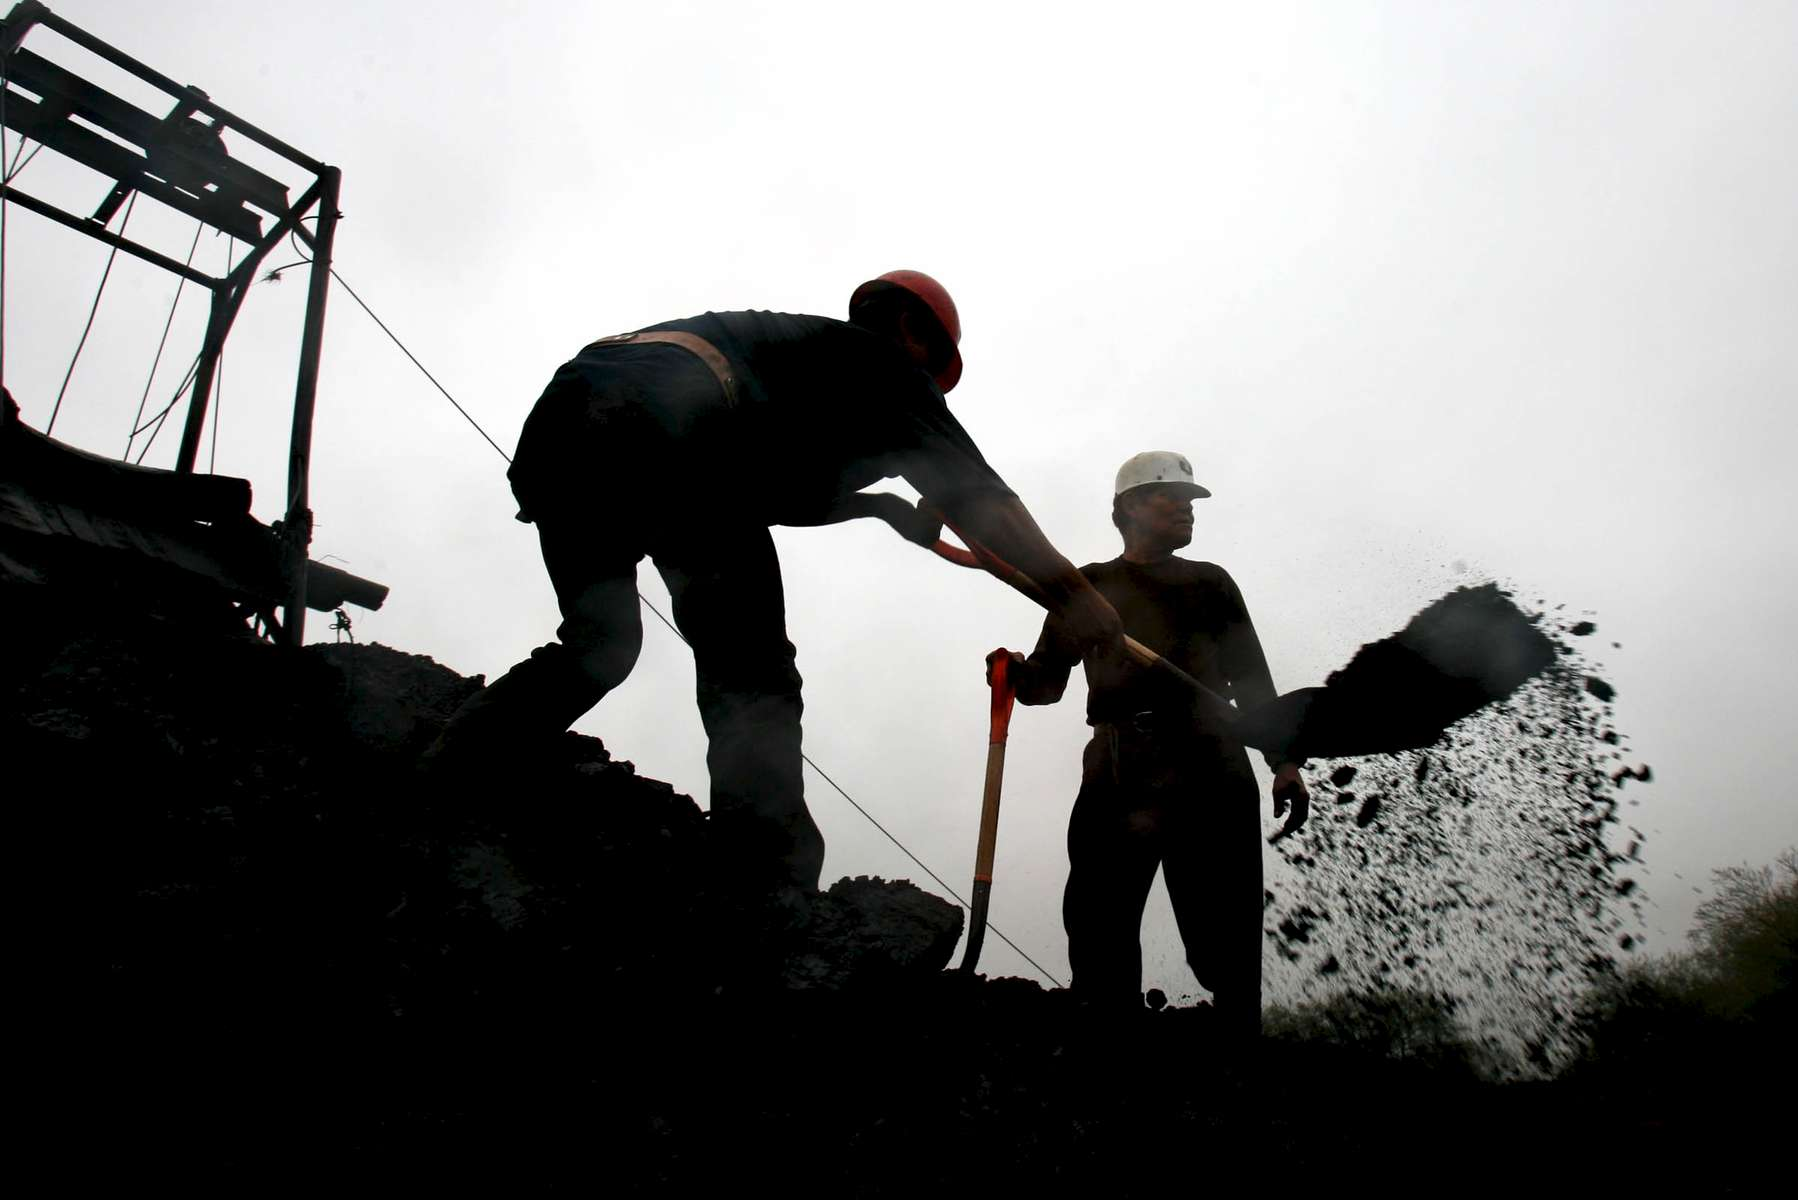 Coal miners work Friday at a coal mine owned by a different company than the one involved in Mexico's latest incident, about 10 kilometers from the Pasta de Conchos coal mine in San Juan de Sabinas in the Mexican state of Coahuila. Coal mines dot the landscape in the region. On Sunday 65 miners were trapped as much as 2000 feet below ground after an explosion.Sharón Steinmann / Houston Chronicle